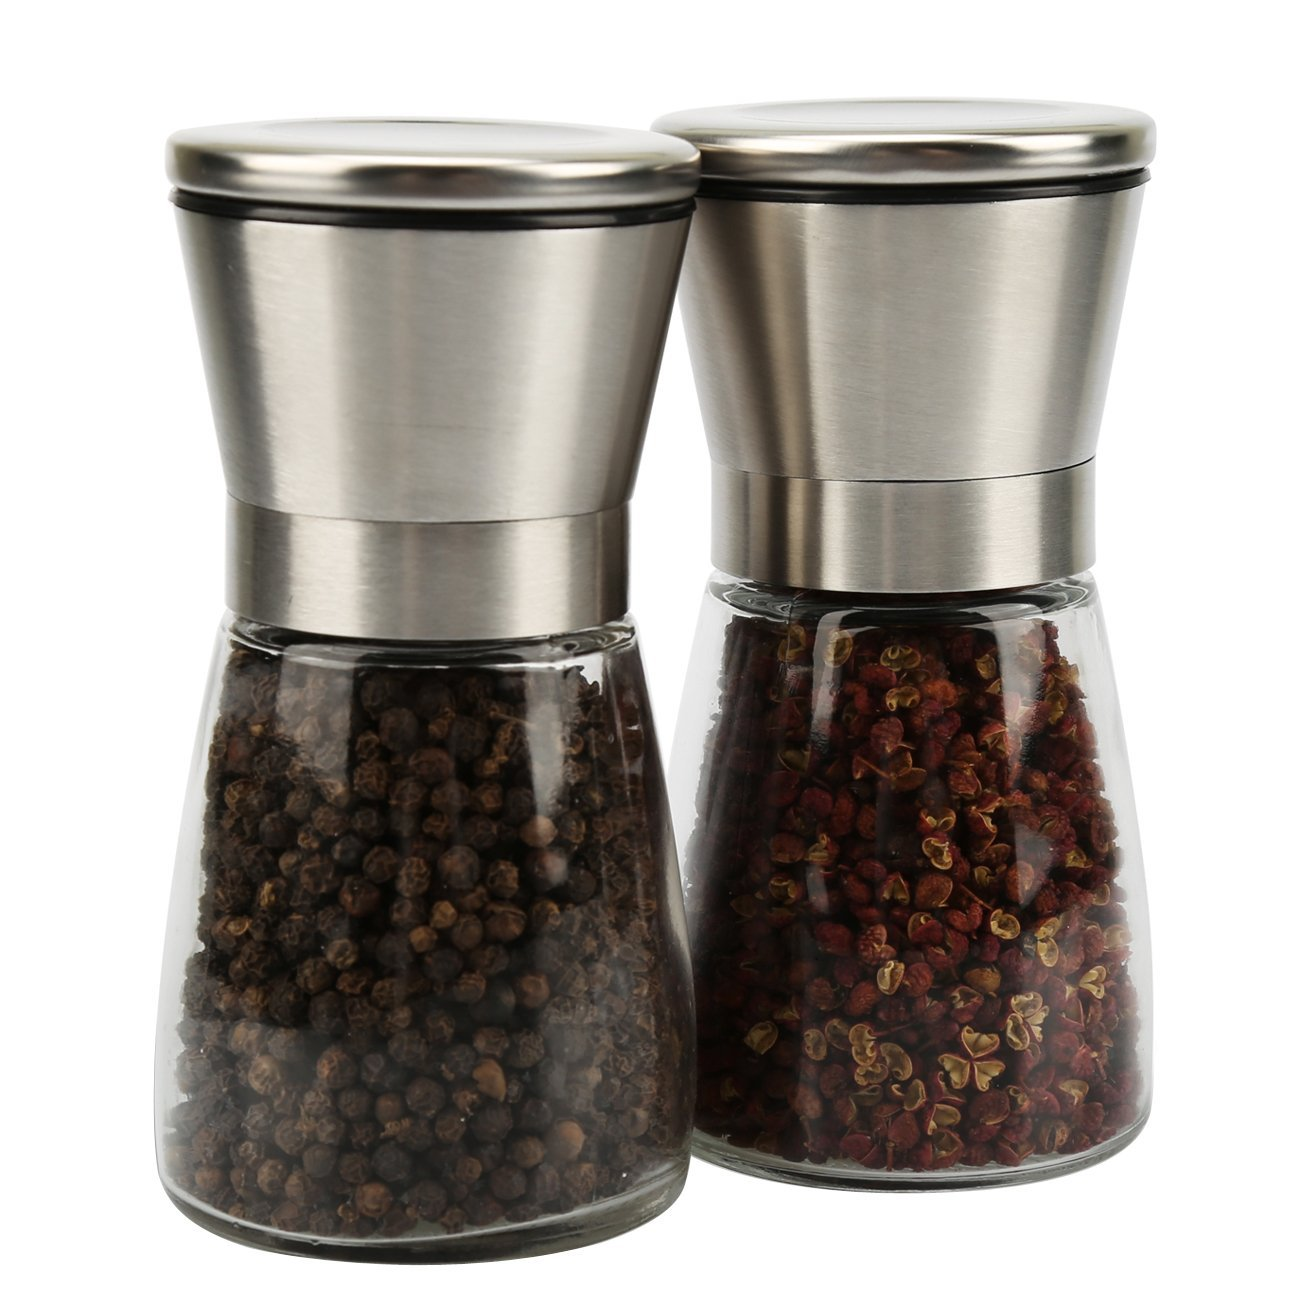 salt and pepper grinder set slim brushed stainless steel pepper mill and salt mill adjustable. Black Bedroom Furniture Sets. Home Design Ideas